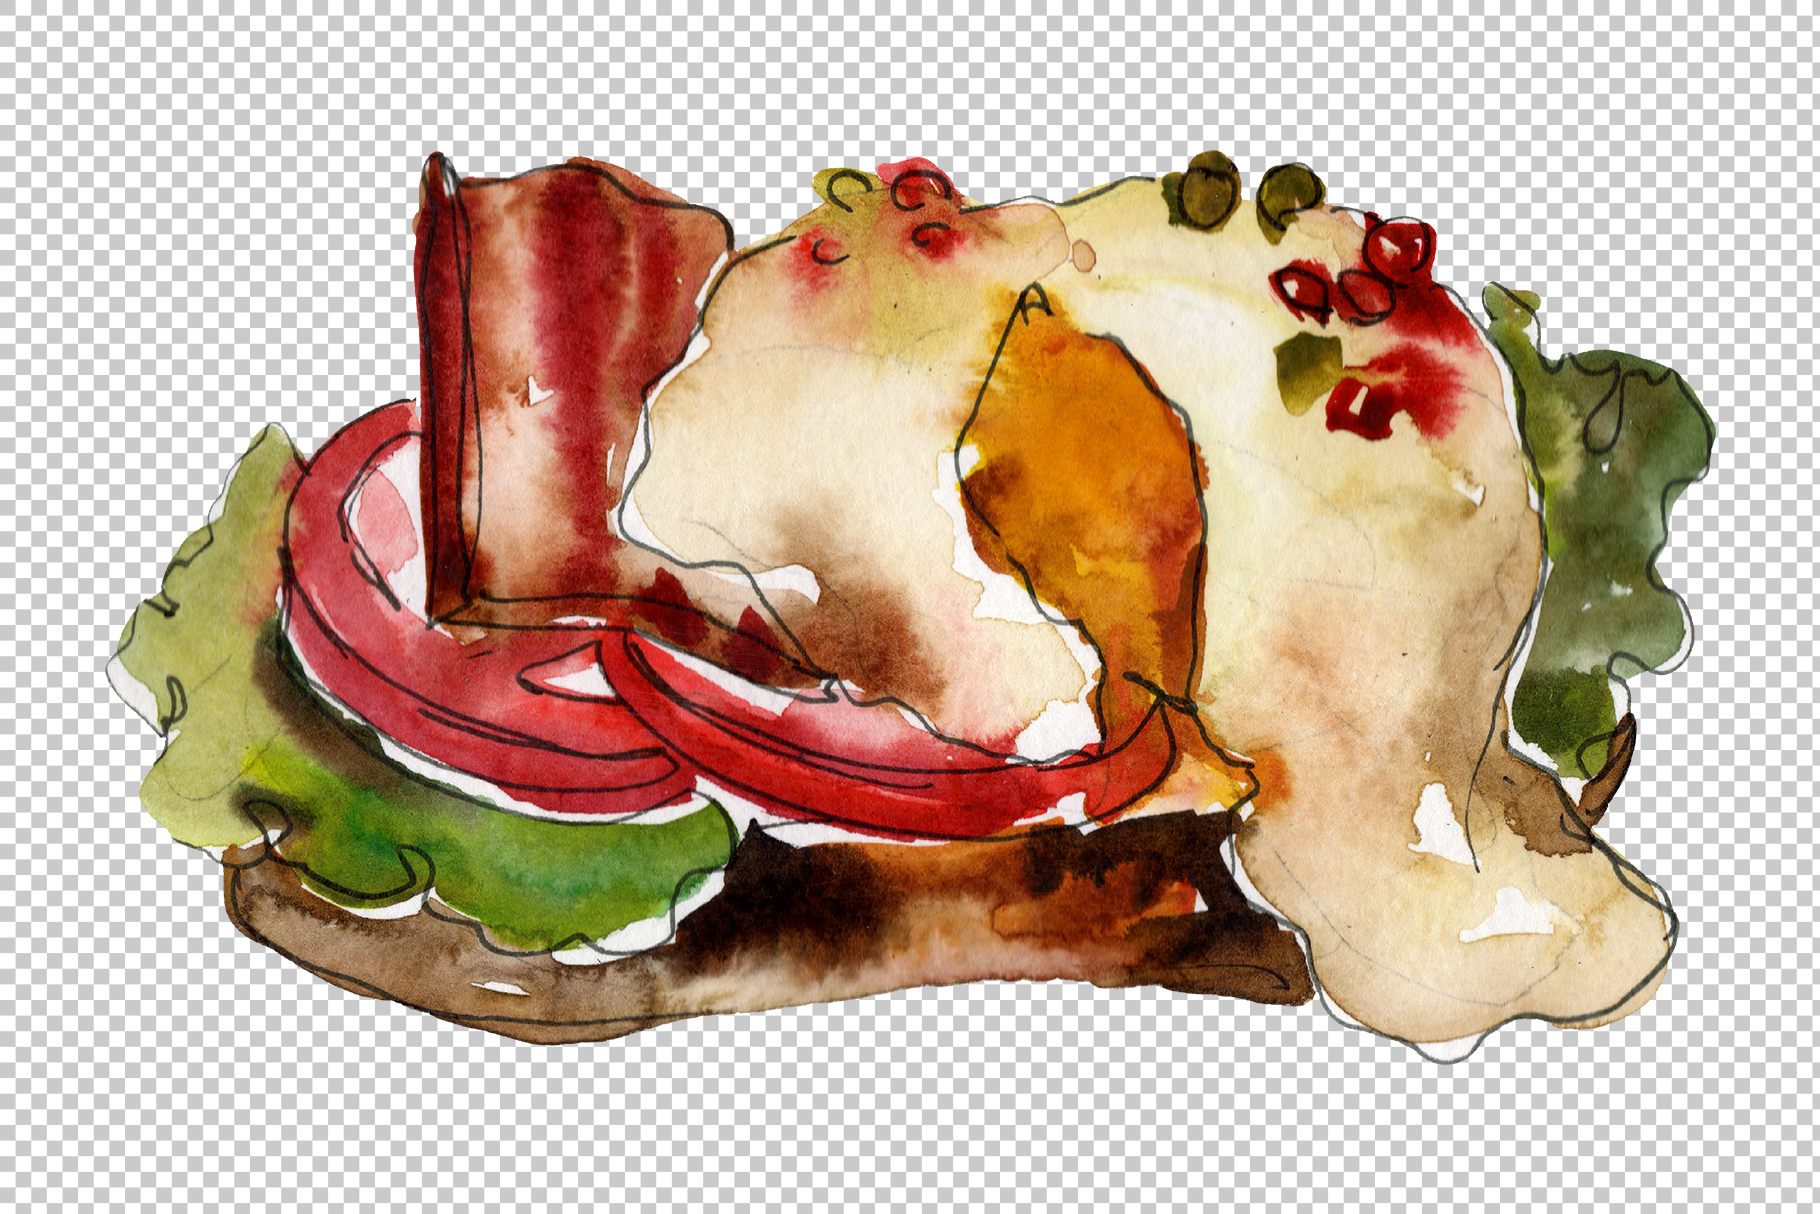 Sandwich sausage Watercolor png example image 6